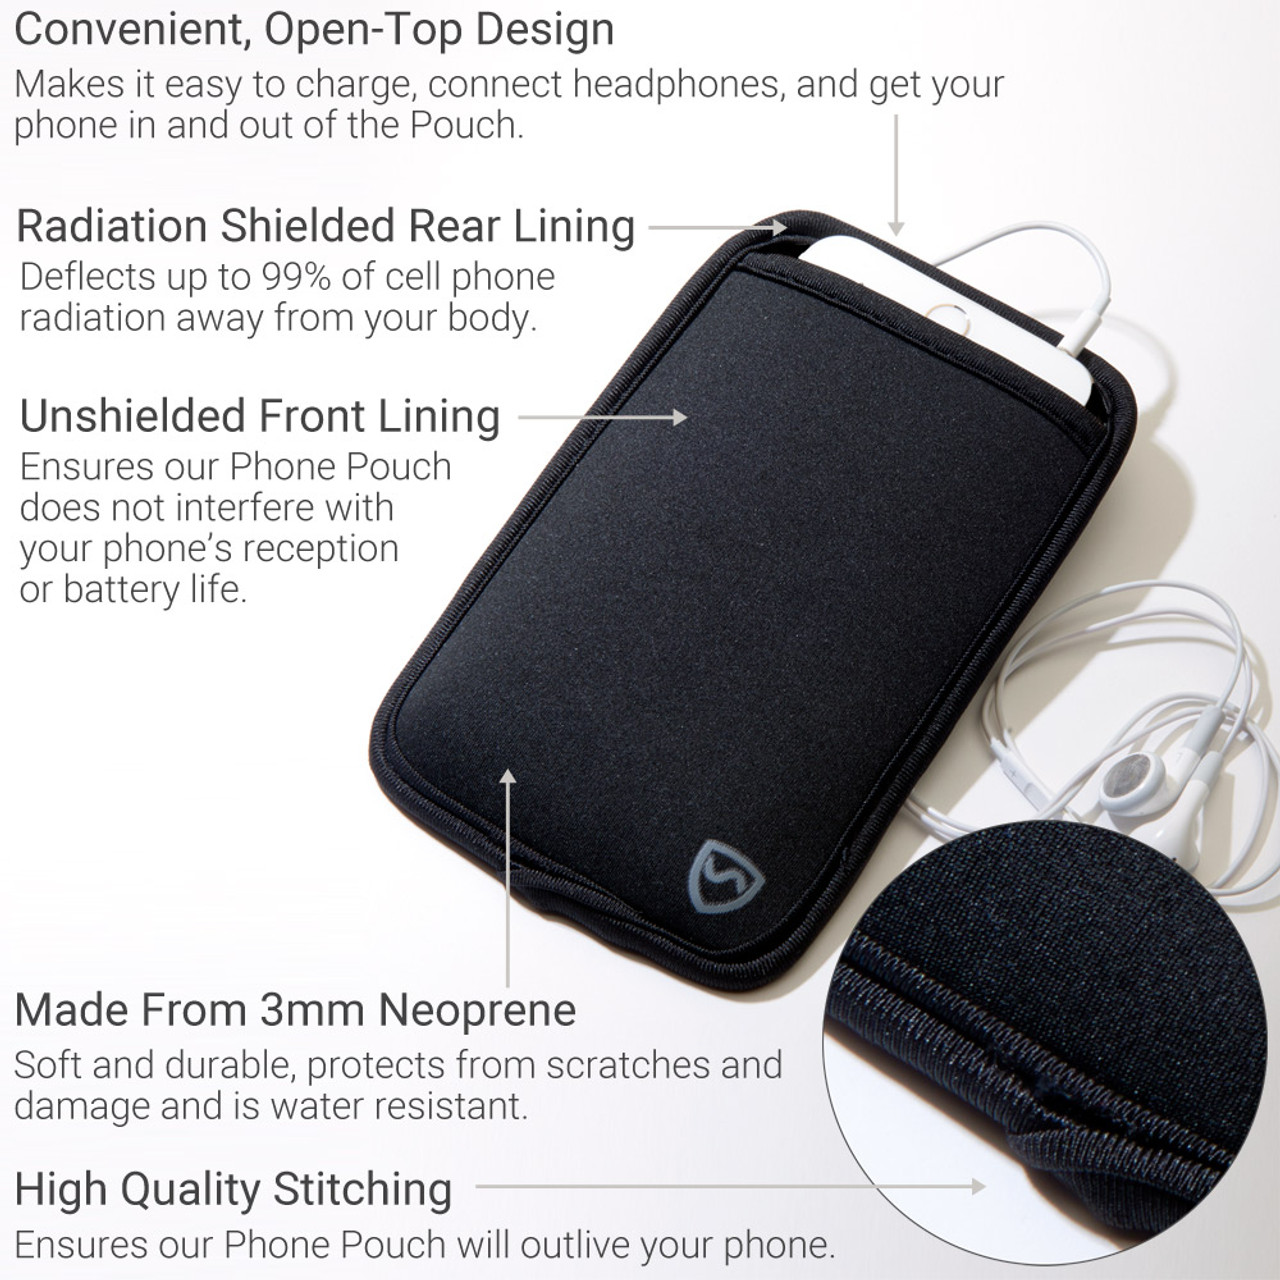 SYB - Pouch and/or Earbuds for Cellphone 5G/EMF radiation protection